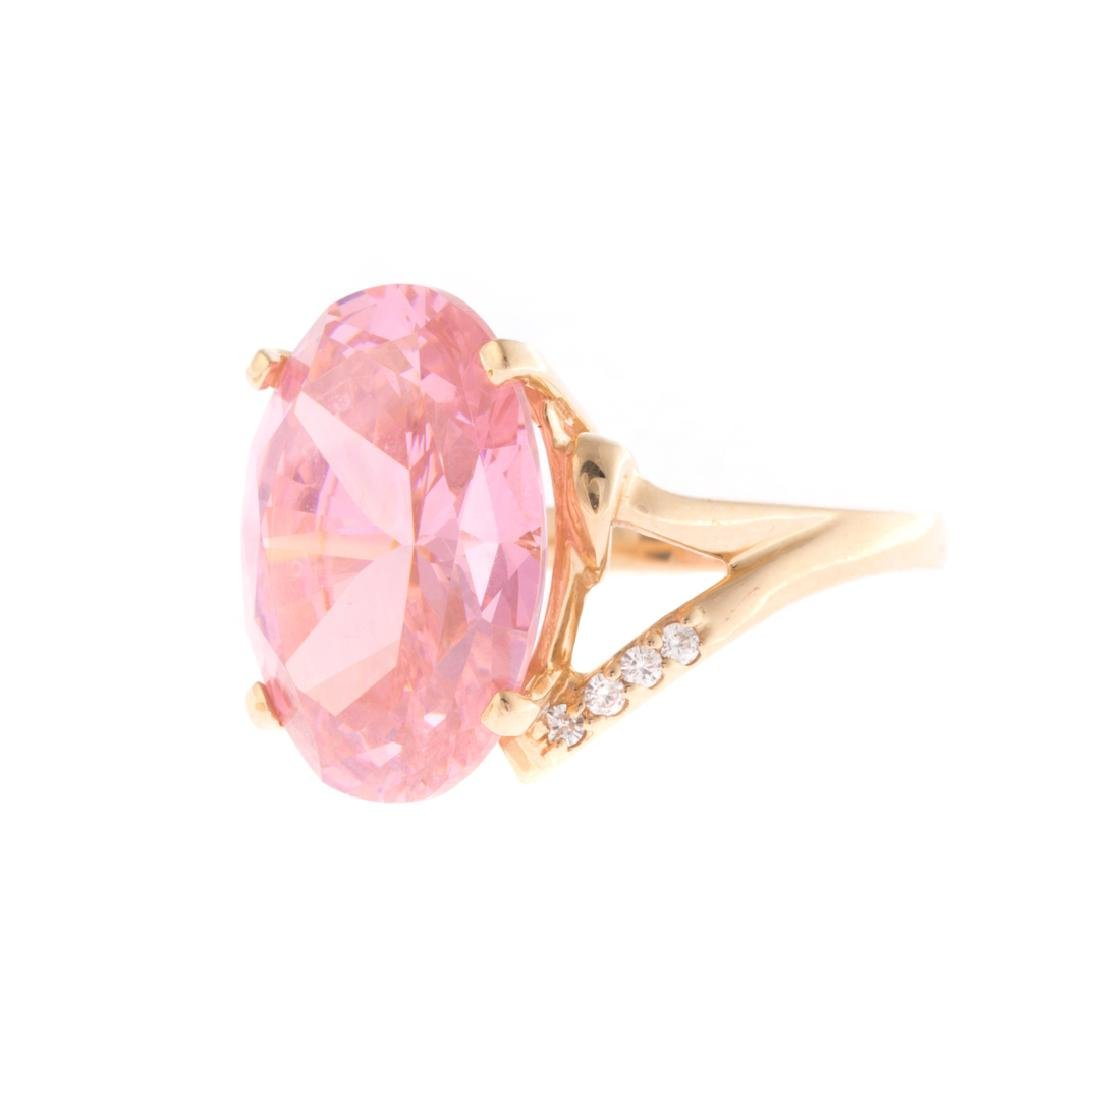 Two Lady's Gemstone Rings in 14K Gold - 2